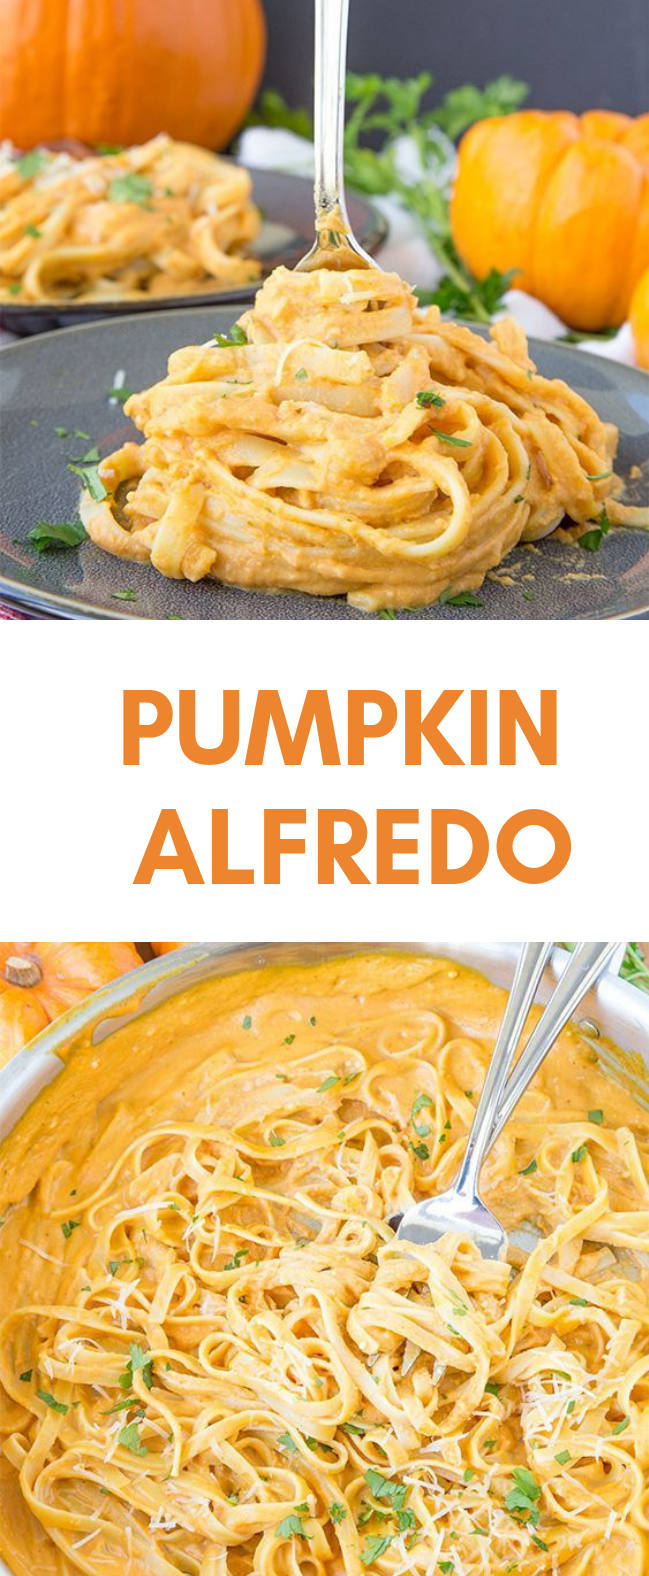 PUMPKIN ALFREDO ##foodsvegetarian #eat healthy